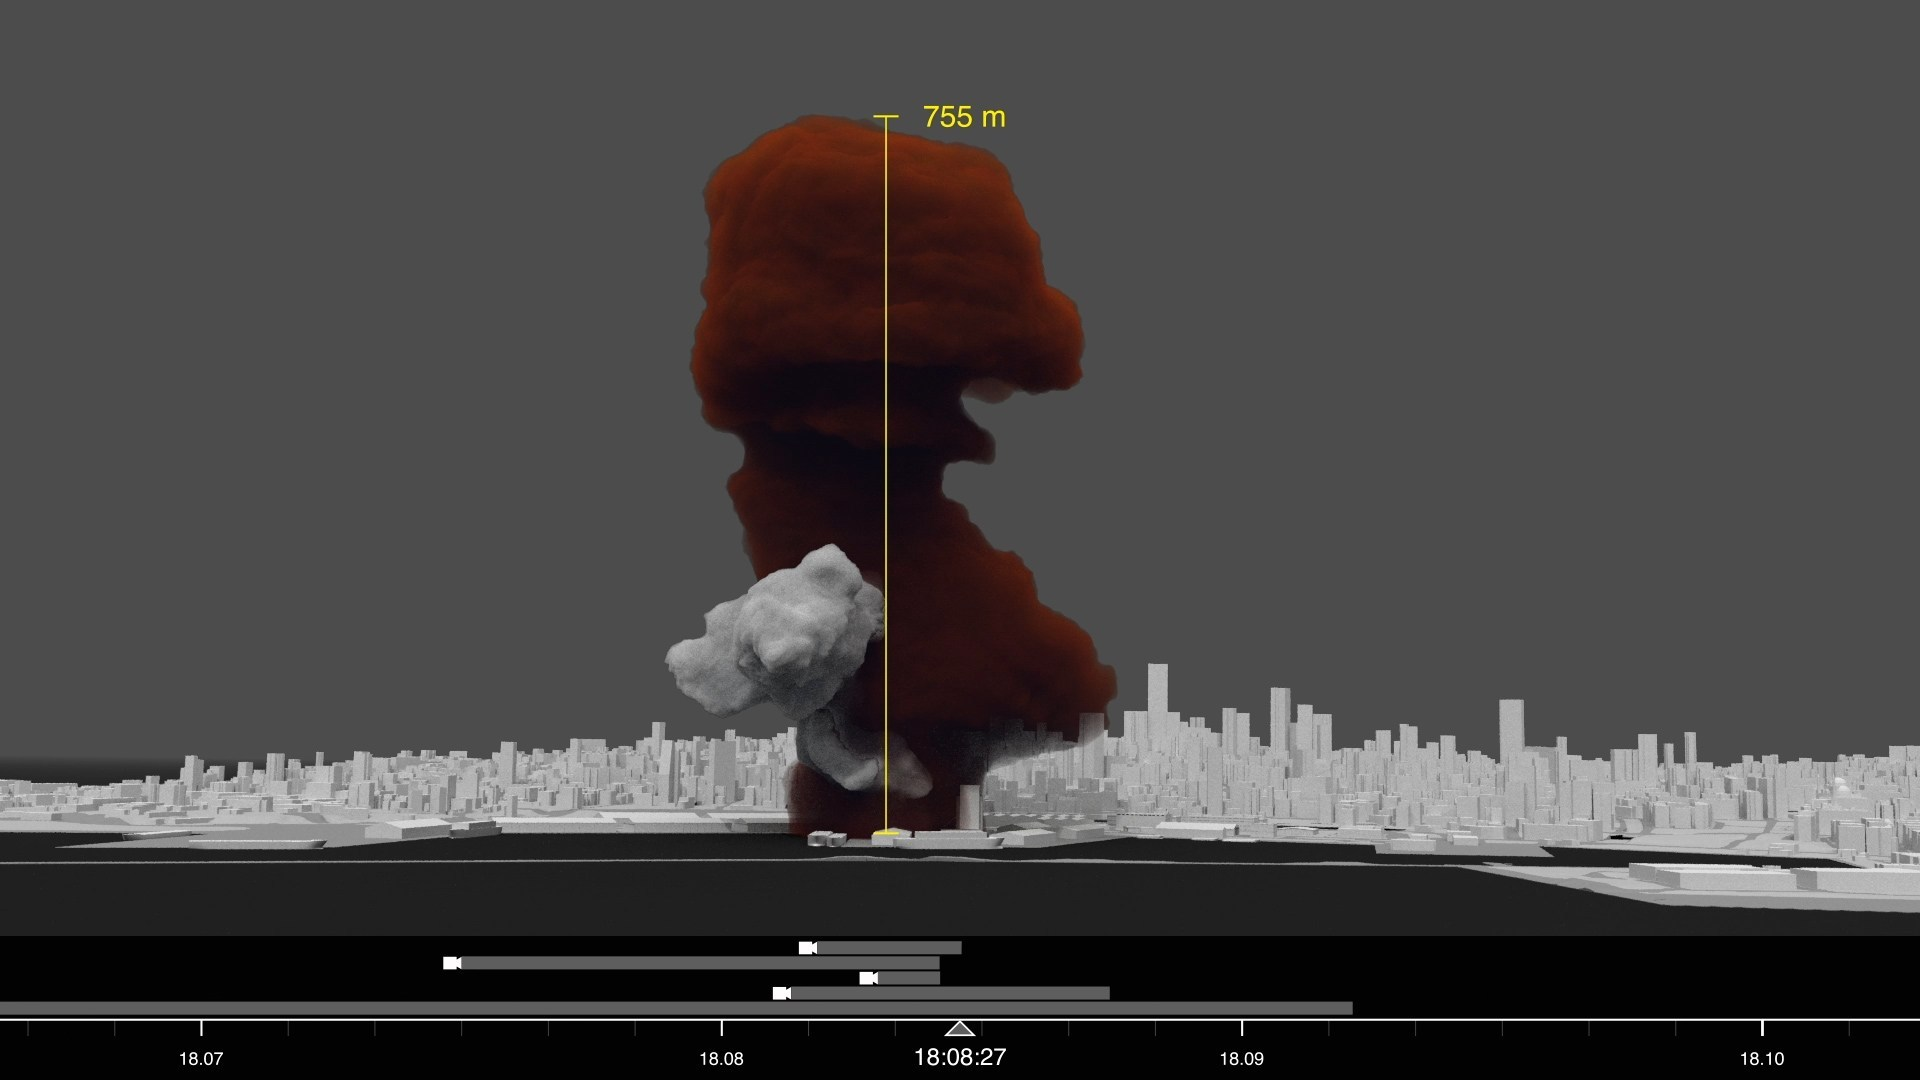 A rendering from Forensic Architecture's analysis of the smoke plumes that emanated from the port of Beirut on August 4, 2020 (image courtesy Forensic Architecture)